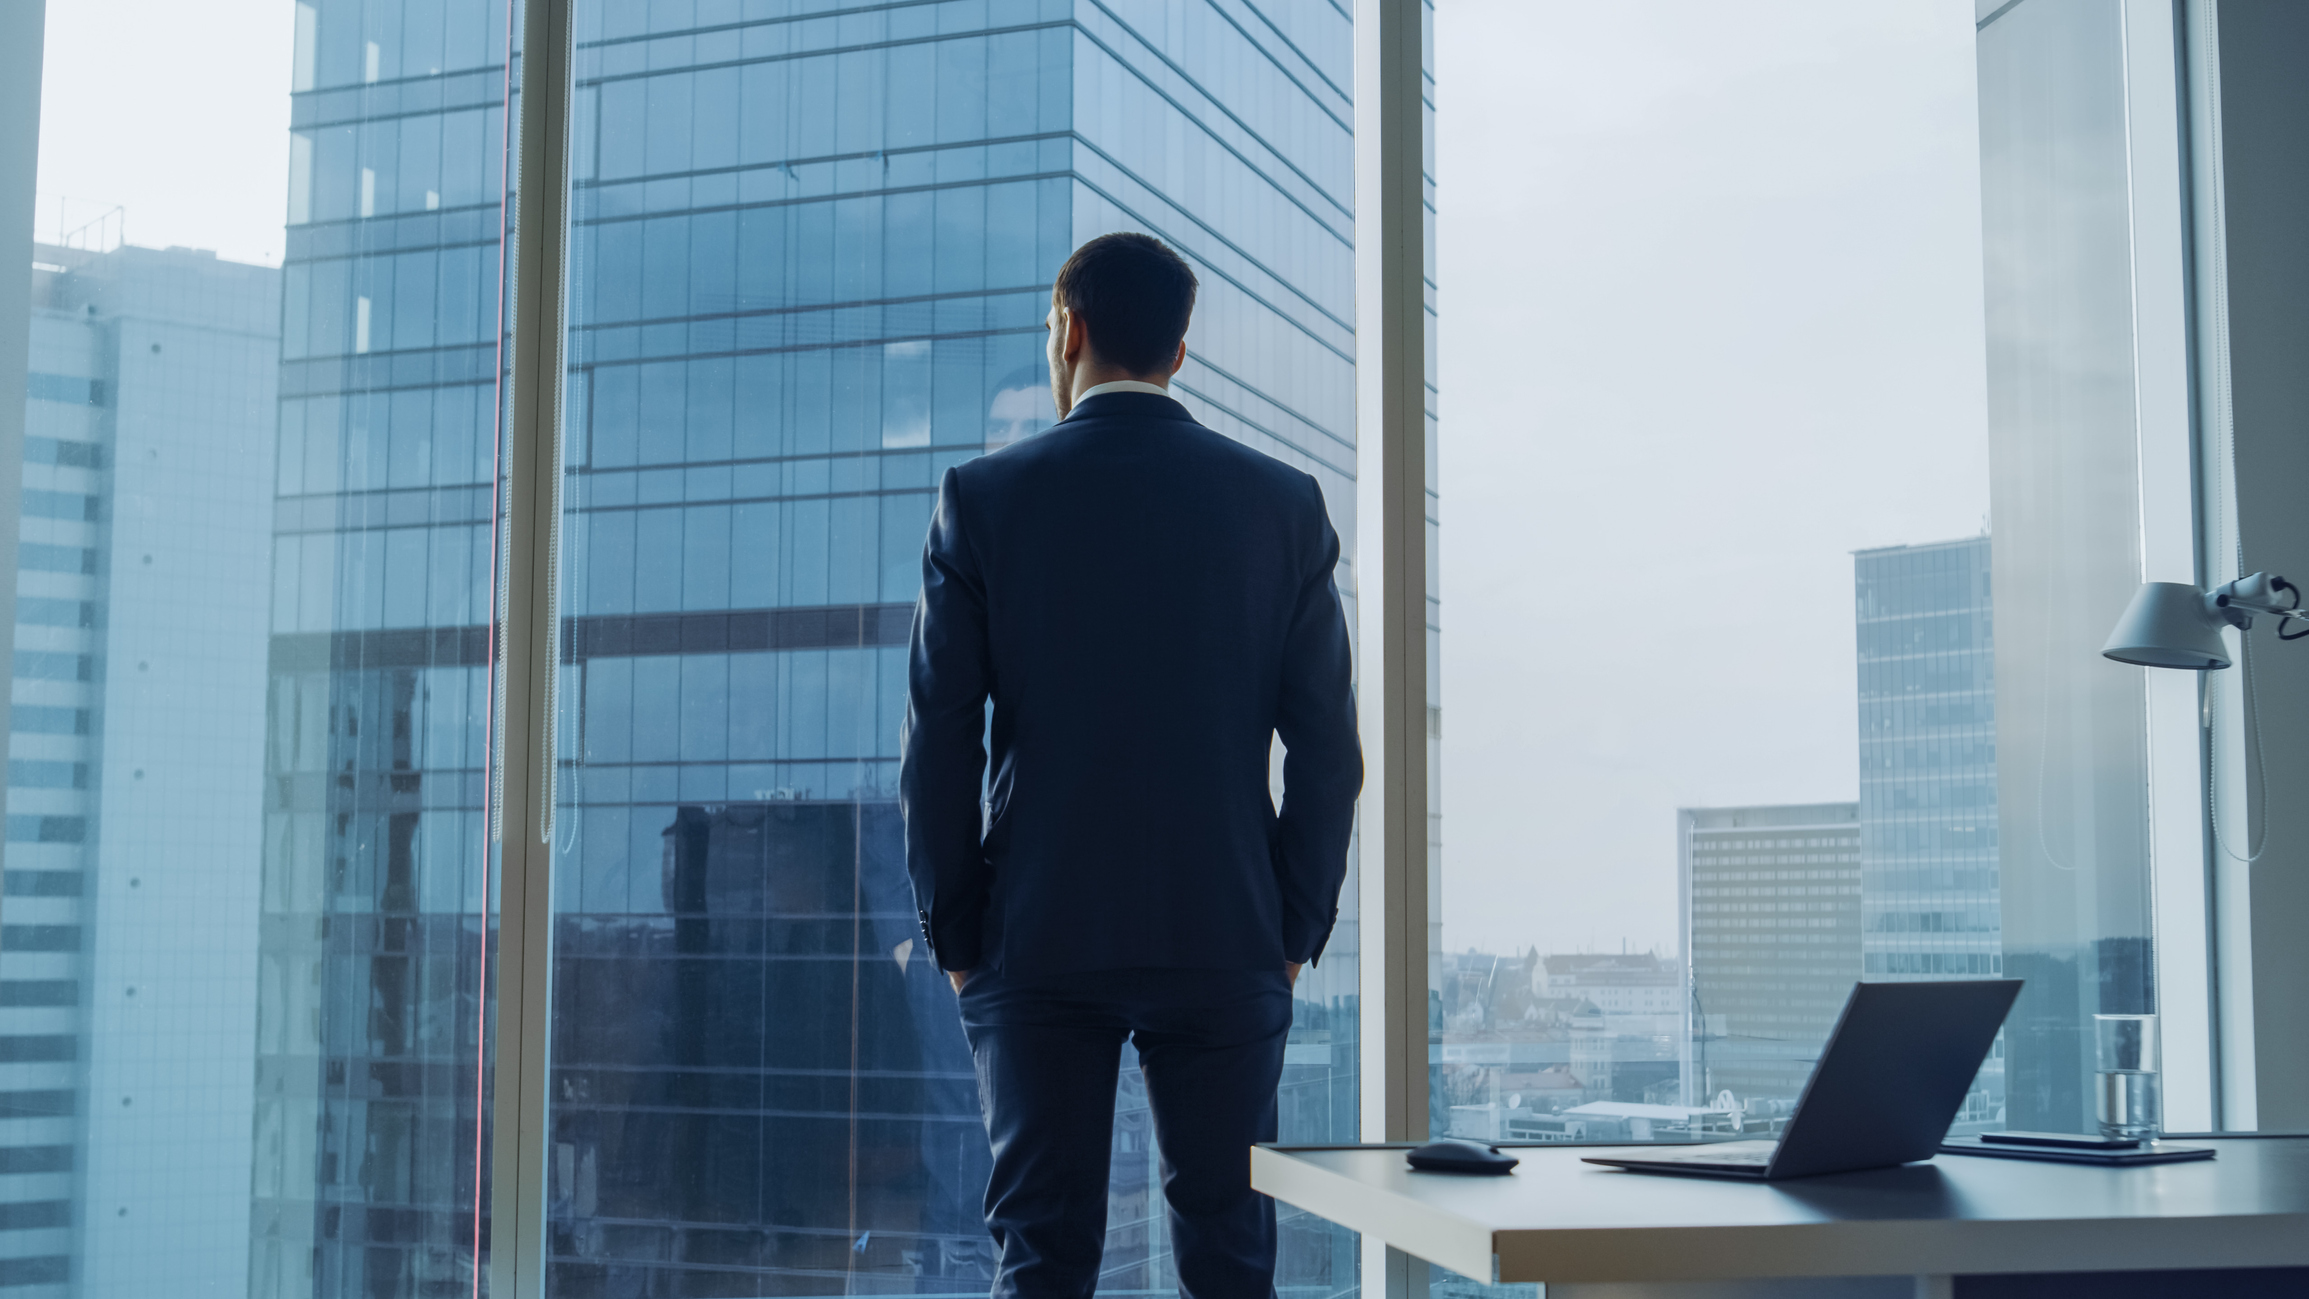 Back View of the Thoughtful Businessman wearing a Suit Standing in His Office, Hands in Pockets and Contemplating Next Big Business Deal, Looking out of the Window. Big City Business District Panoramic Window View. Image credit: iStock